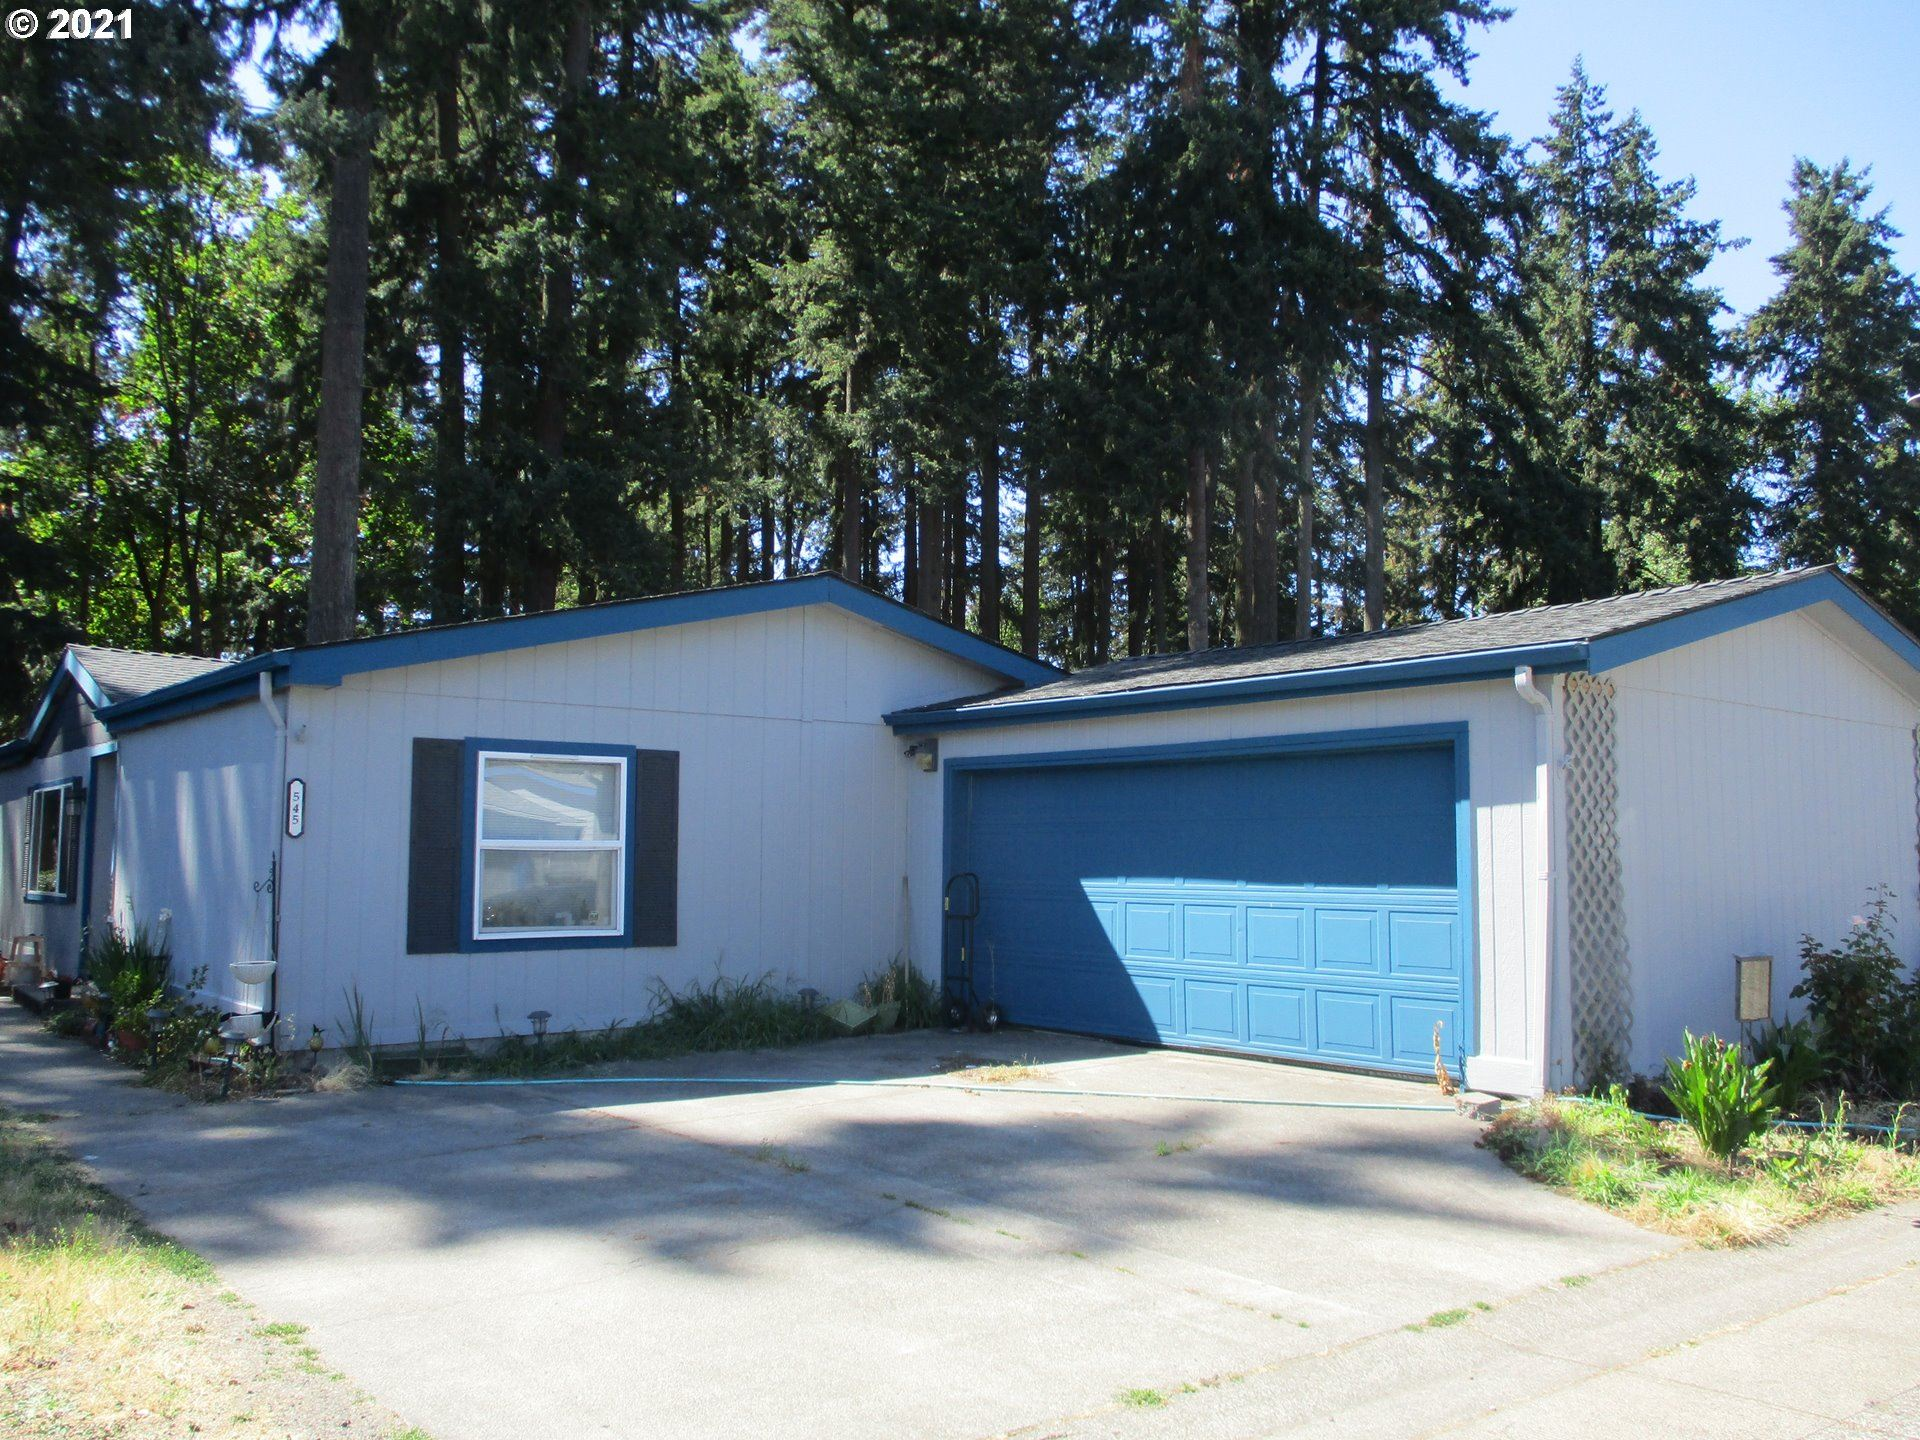 1655 S ELM ST #545, Canby, OR 97013 - MLS#: 21461033